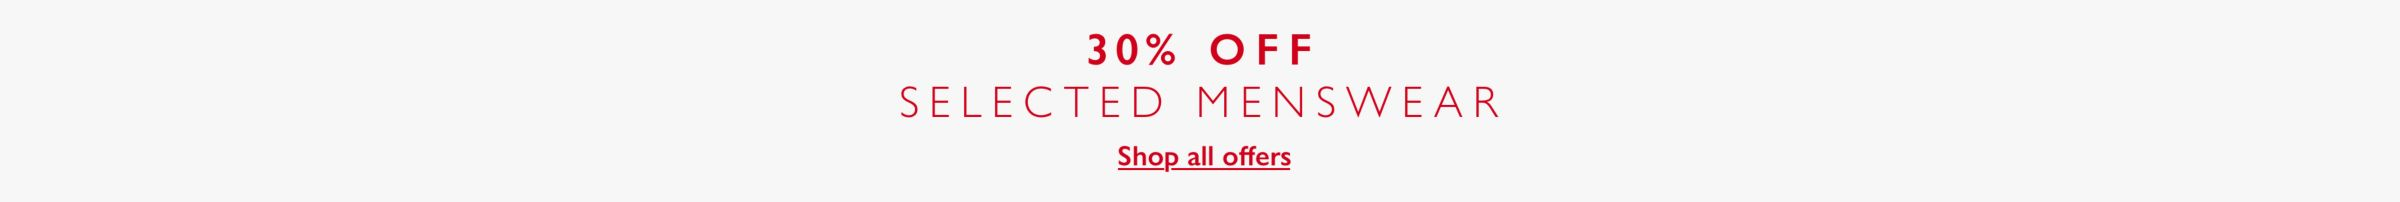 30 percent off selected menswear